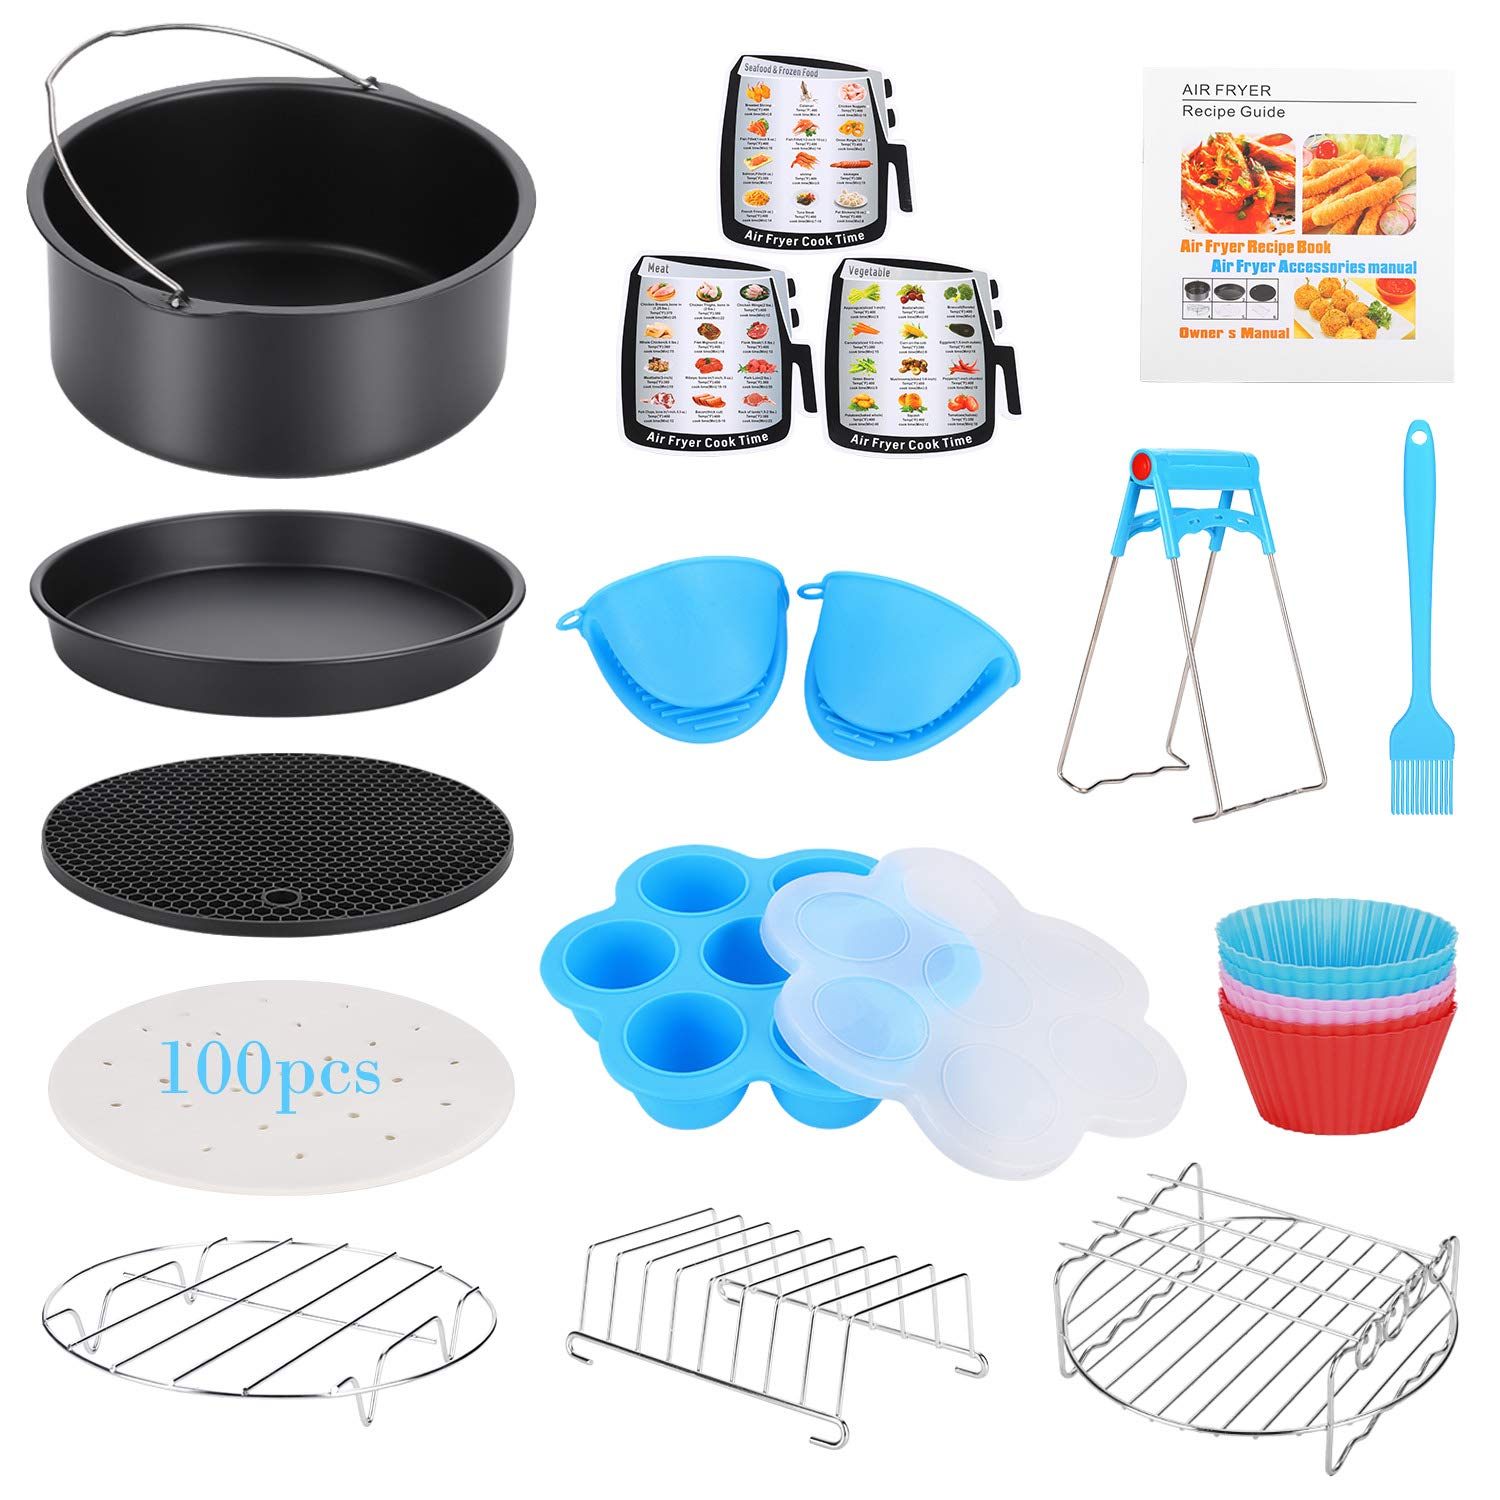 15 Pcs Air Fryer Accessories with Recipe Cookbook for Growise Phillips Cozyna Fits All 3.2QT - 5.8QT Air Fryer, 7in Deep Fryer Accessories